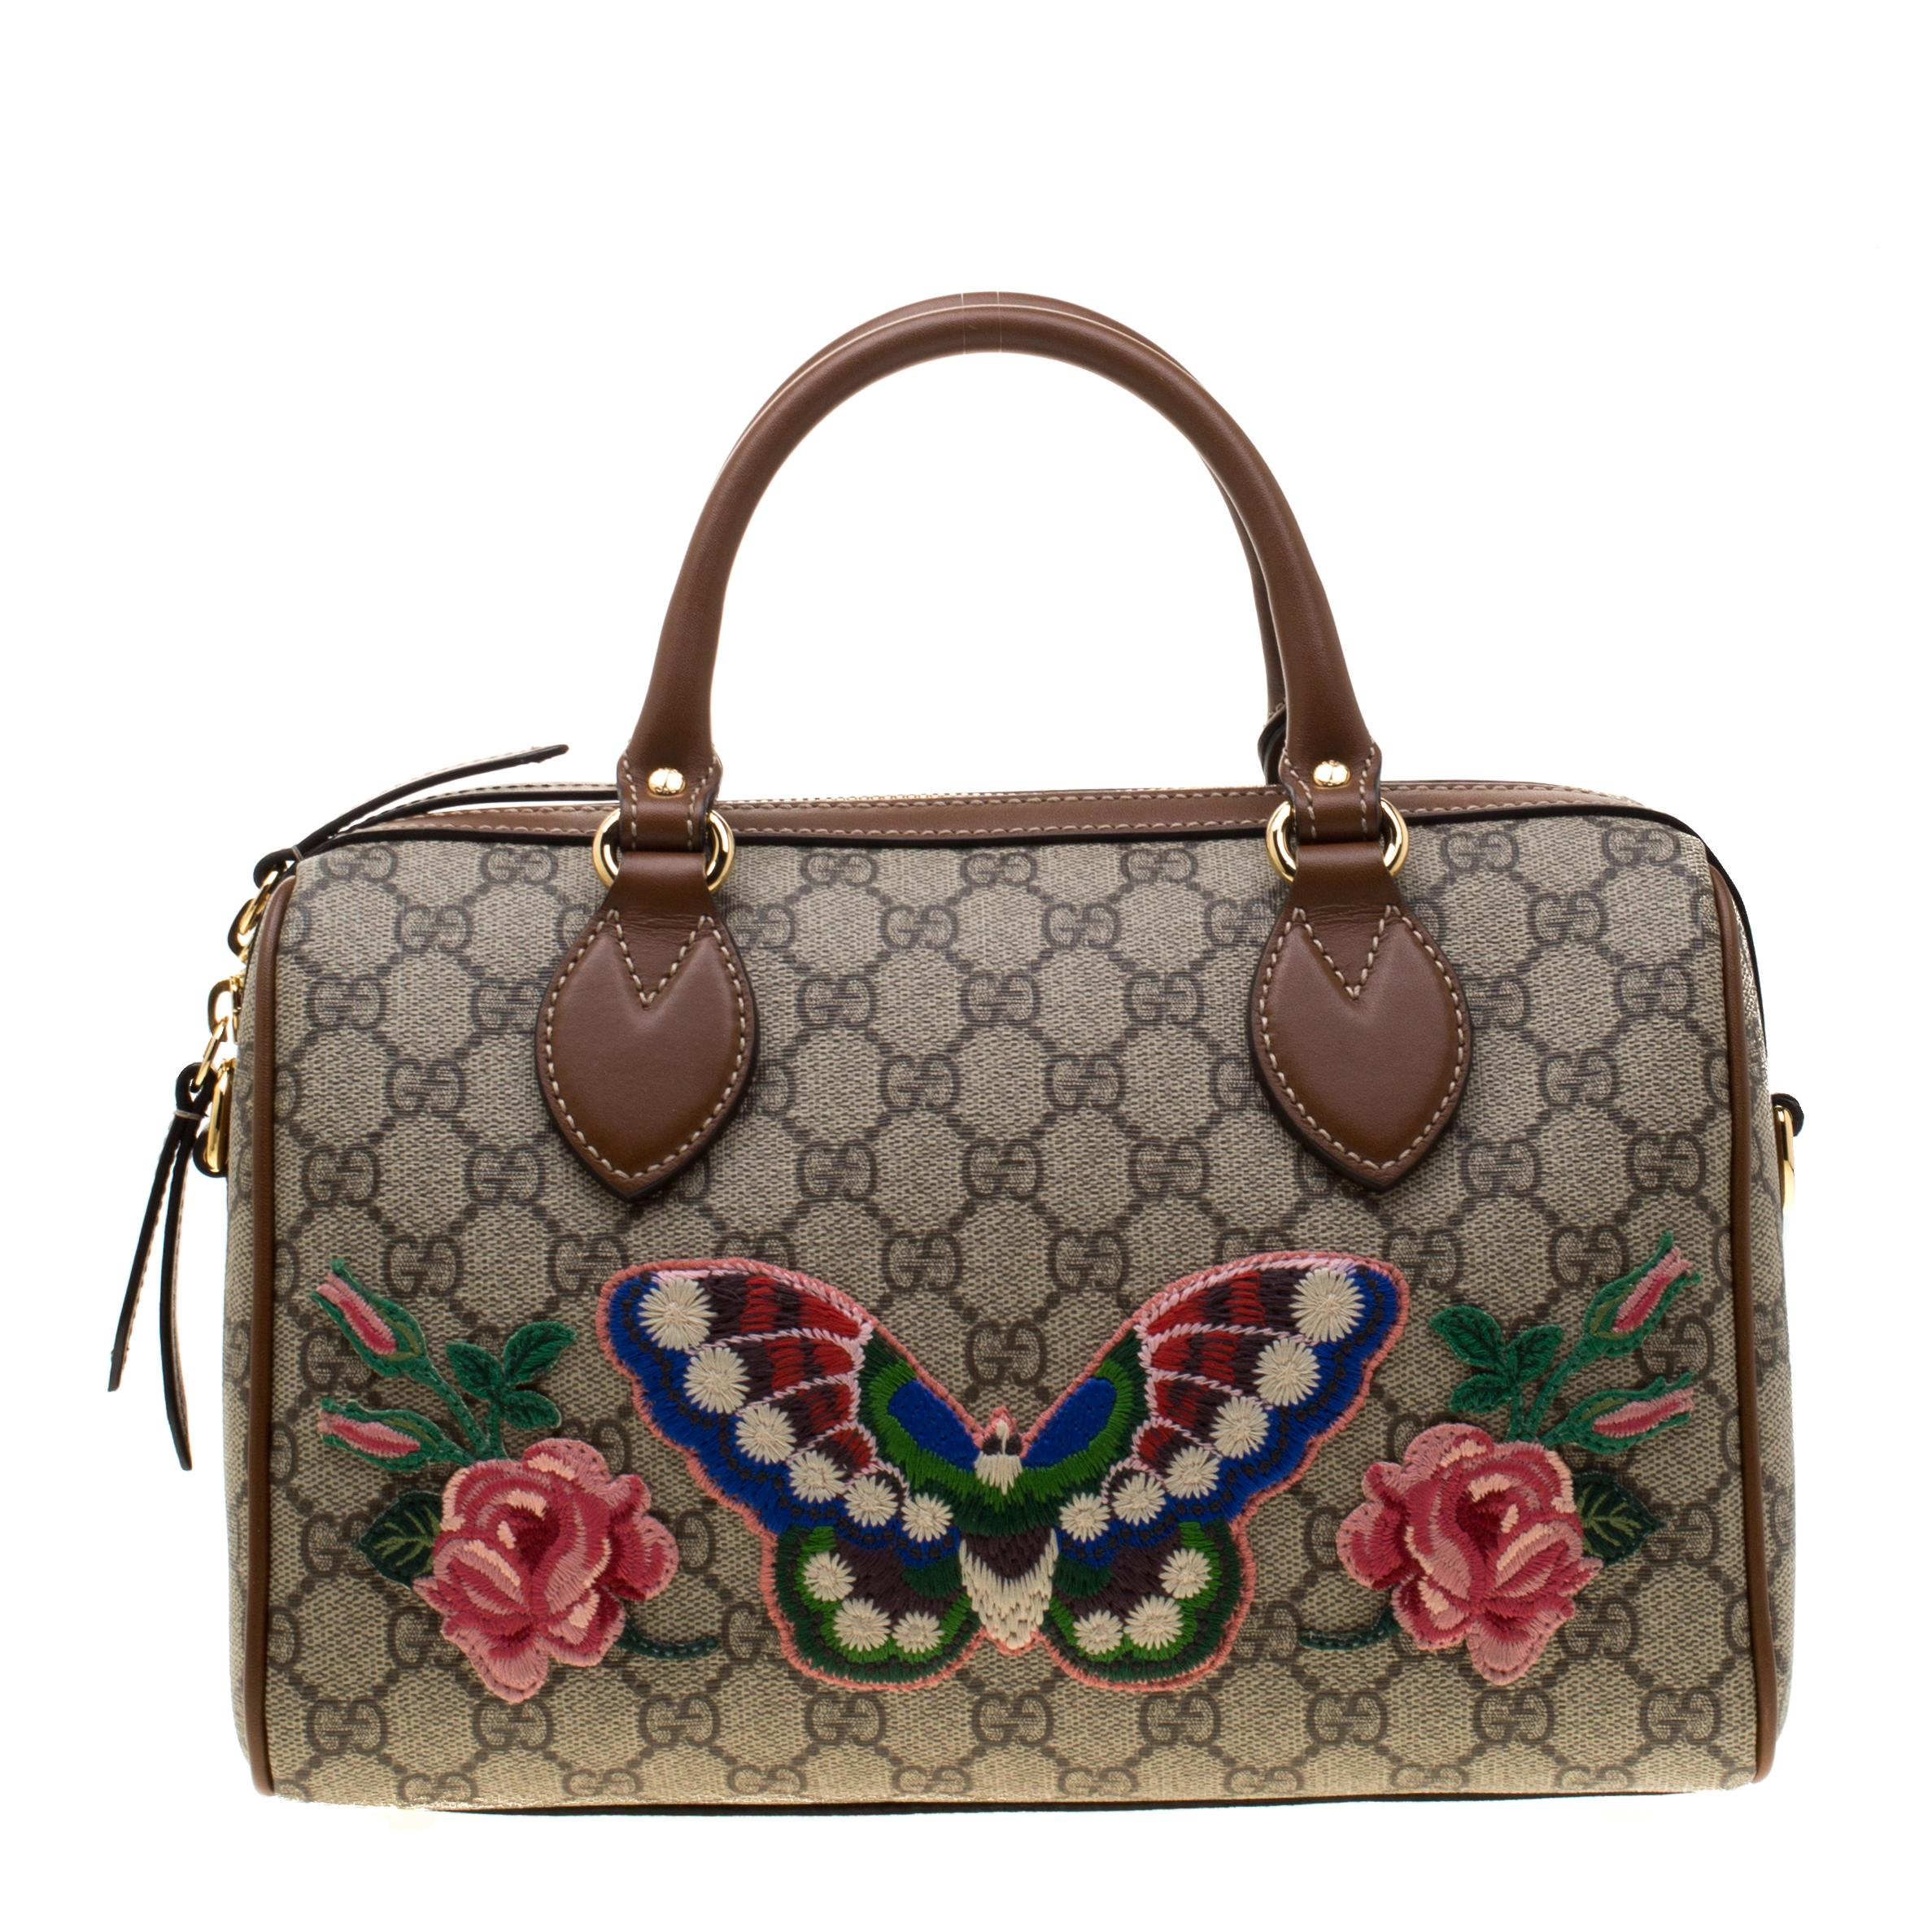 ea0cad0d439 Gucci. Women s Natural Beige brown Butterfly Embroidered GG Supreme Canvas  ...